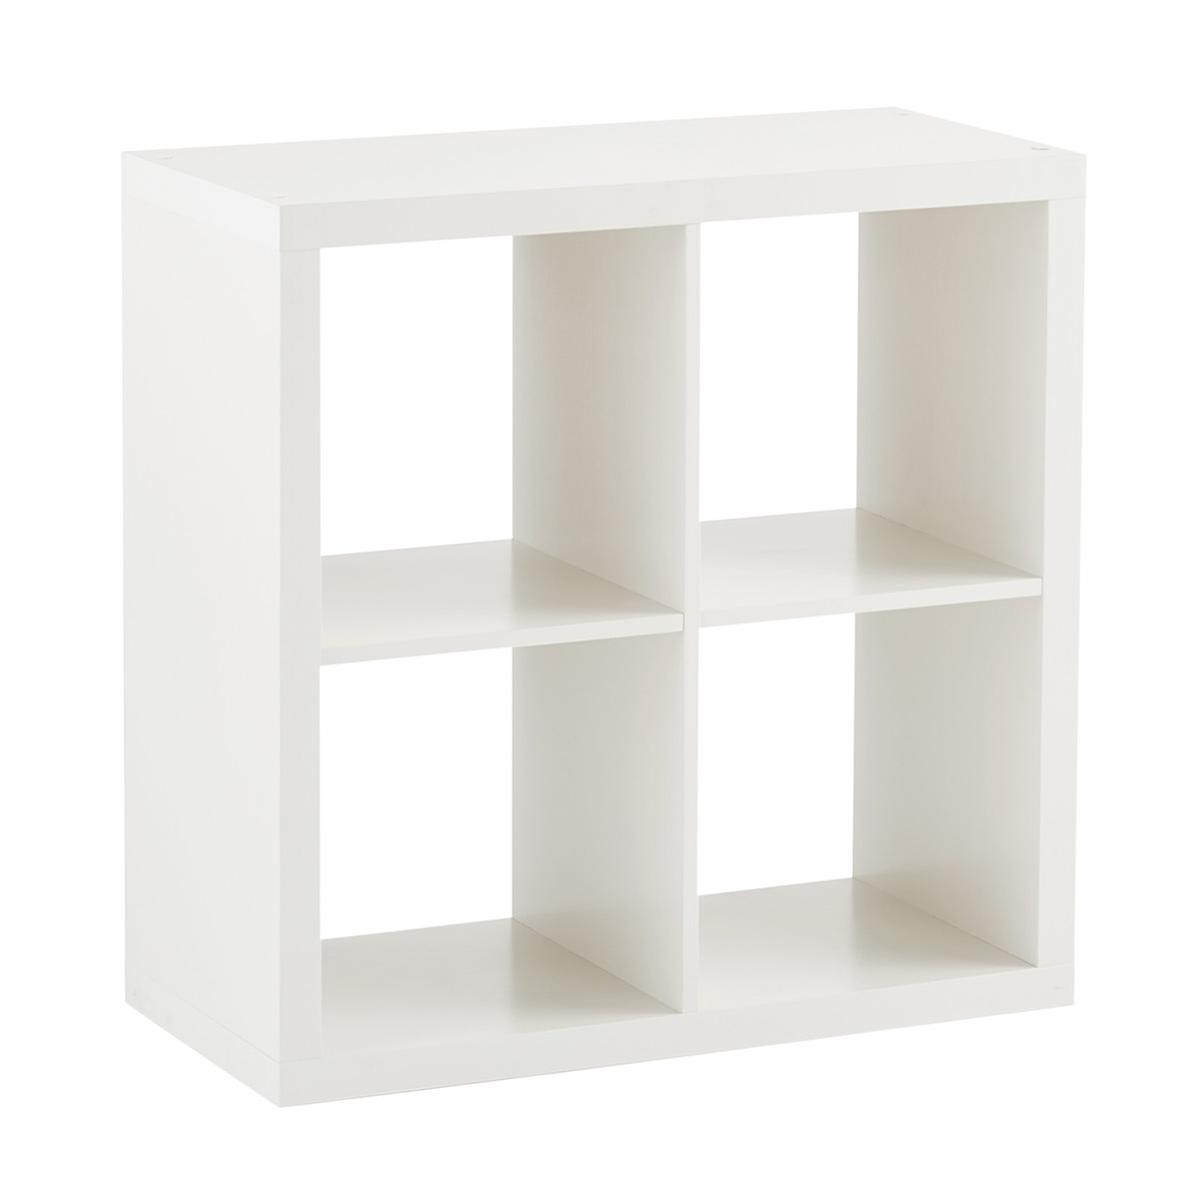 White 4 Cube Cubby Shelving